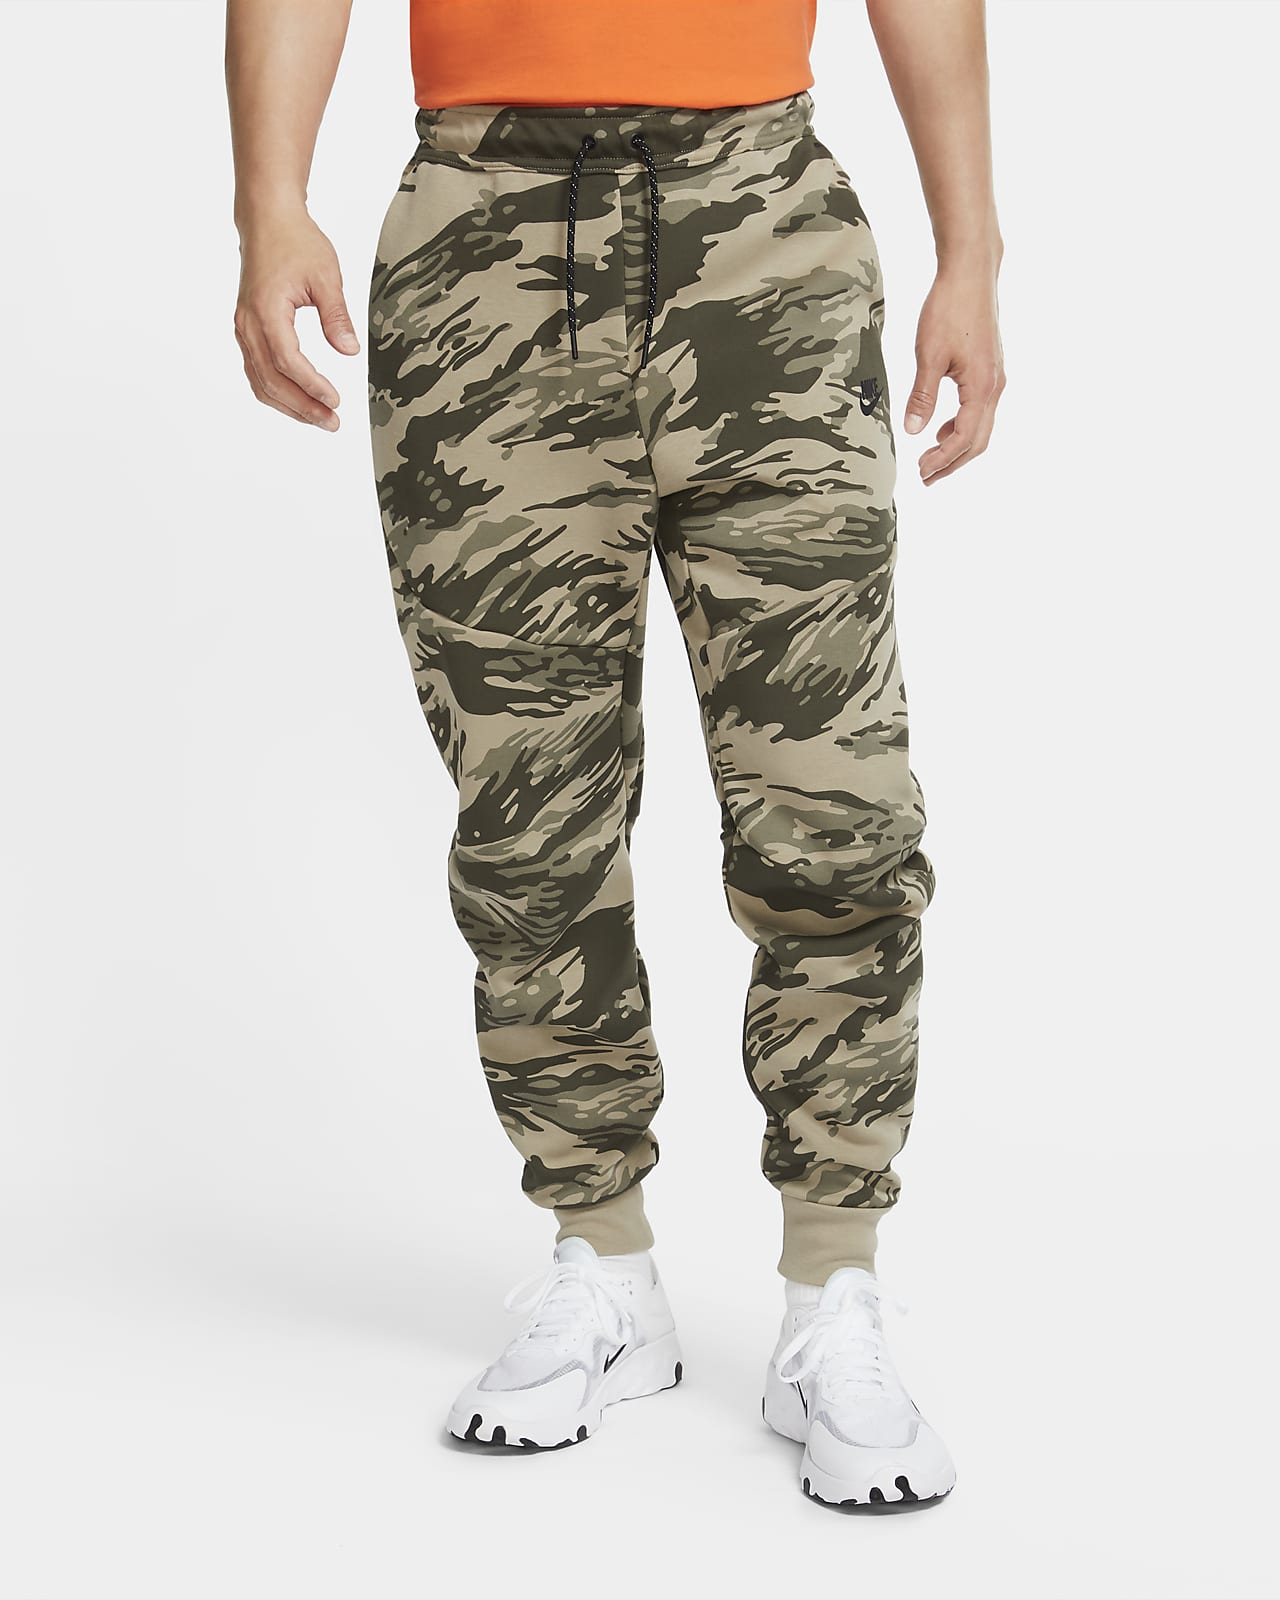 Nike Tech Fleece Men's Printed Camo Joggers